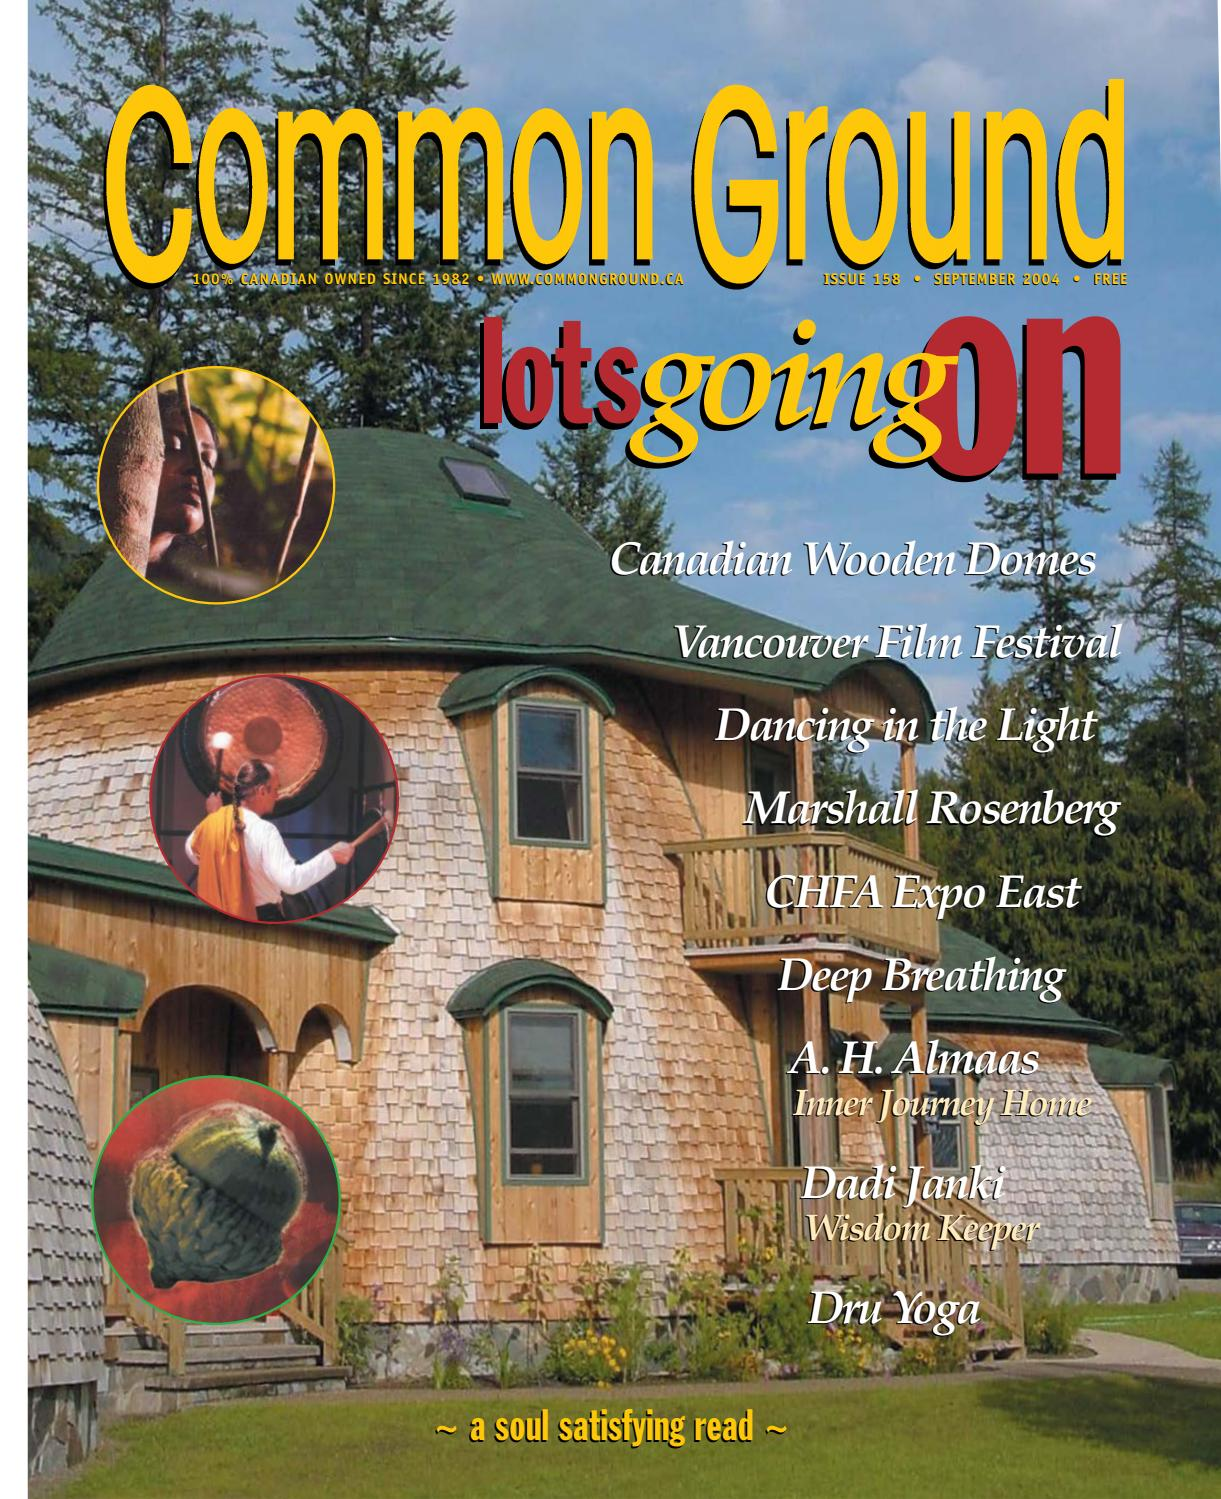 almost nature home decor custom desgned artfcal trees.htm cg158 2004 09 common ground magazine by common ground magazine  cg158 2004 09 common ground magazine by